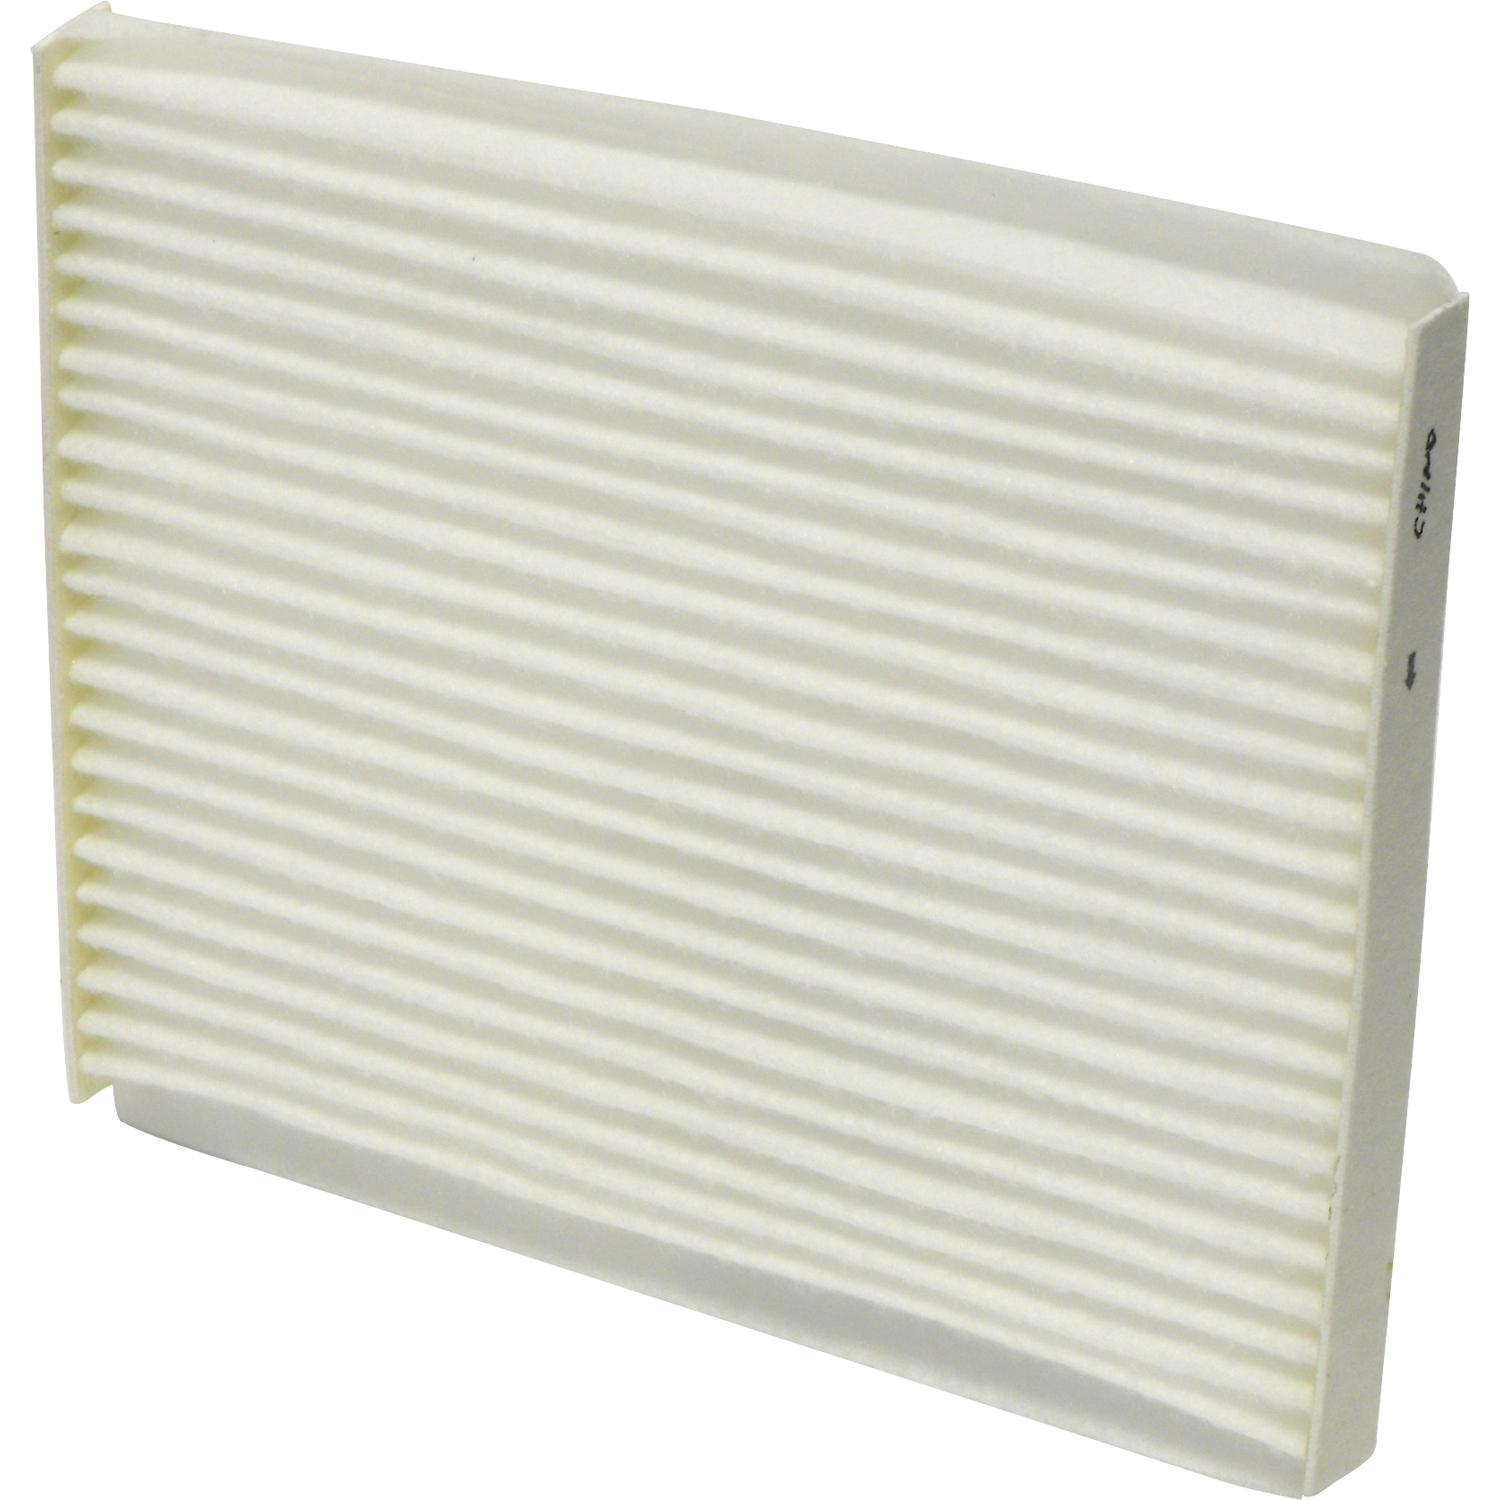 Particulate Cabin Air Filter FI 1176C